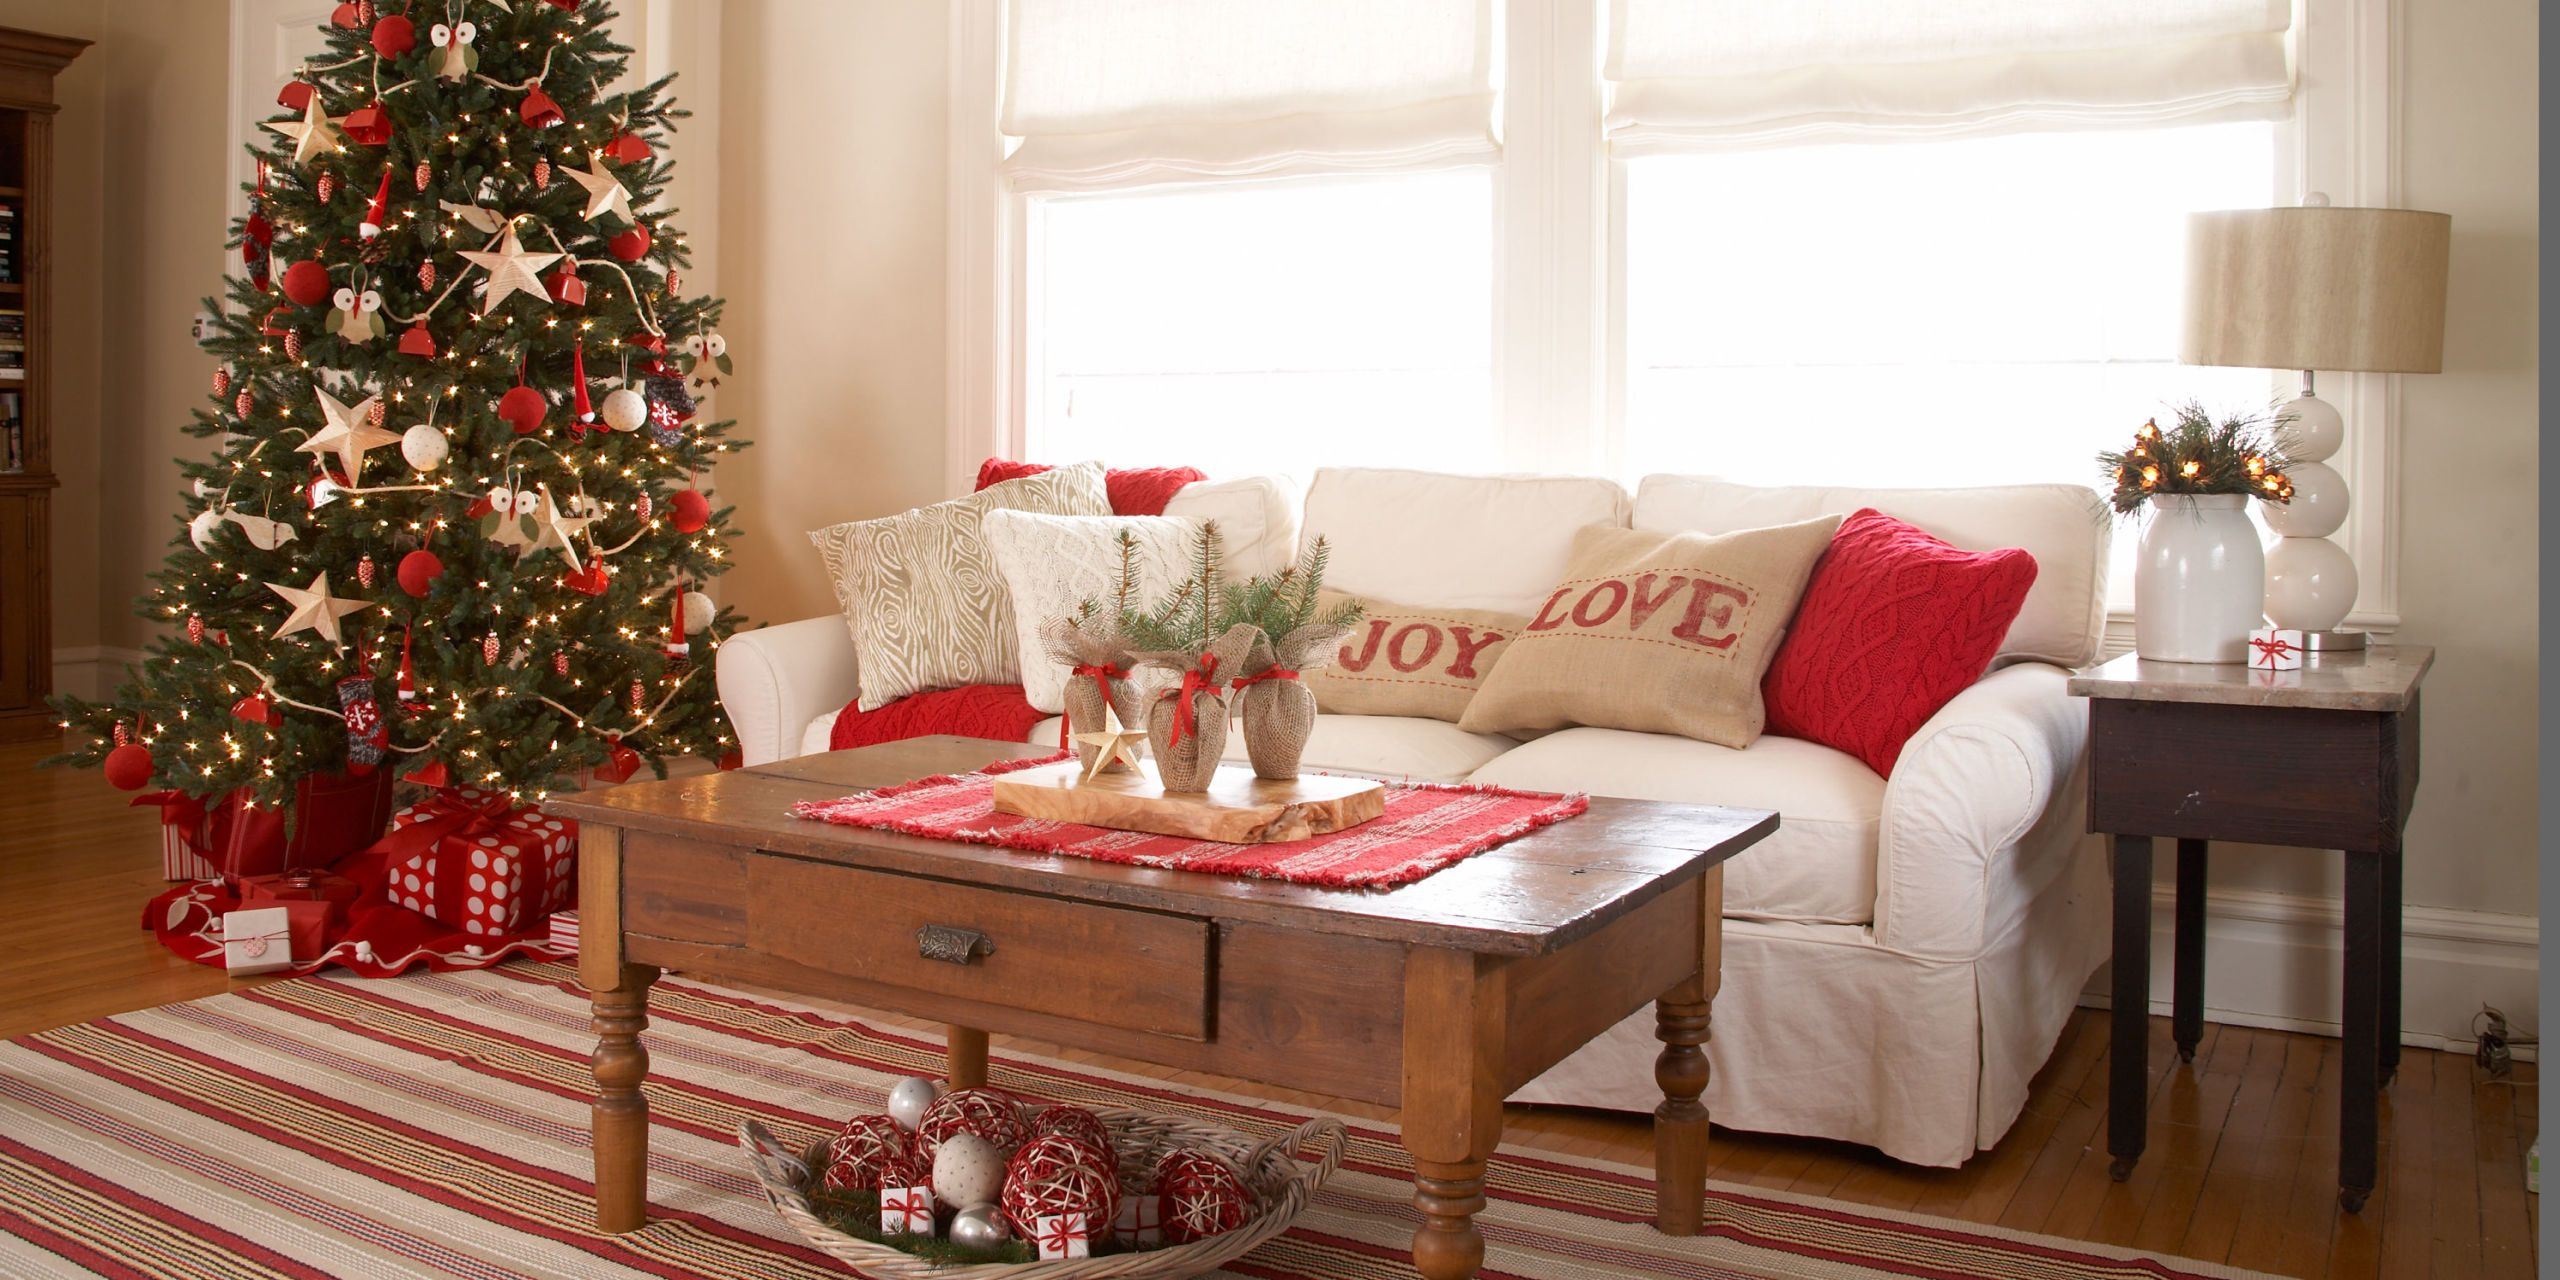 47 Easy DIY Christmas Decorations Homemade Ideas for Holiday